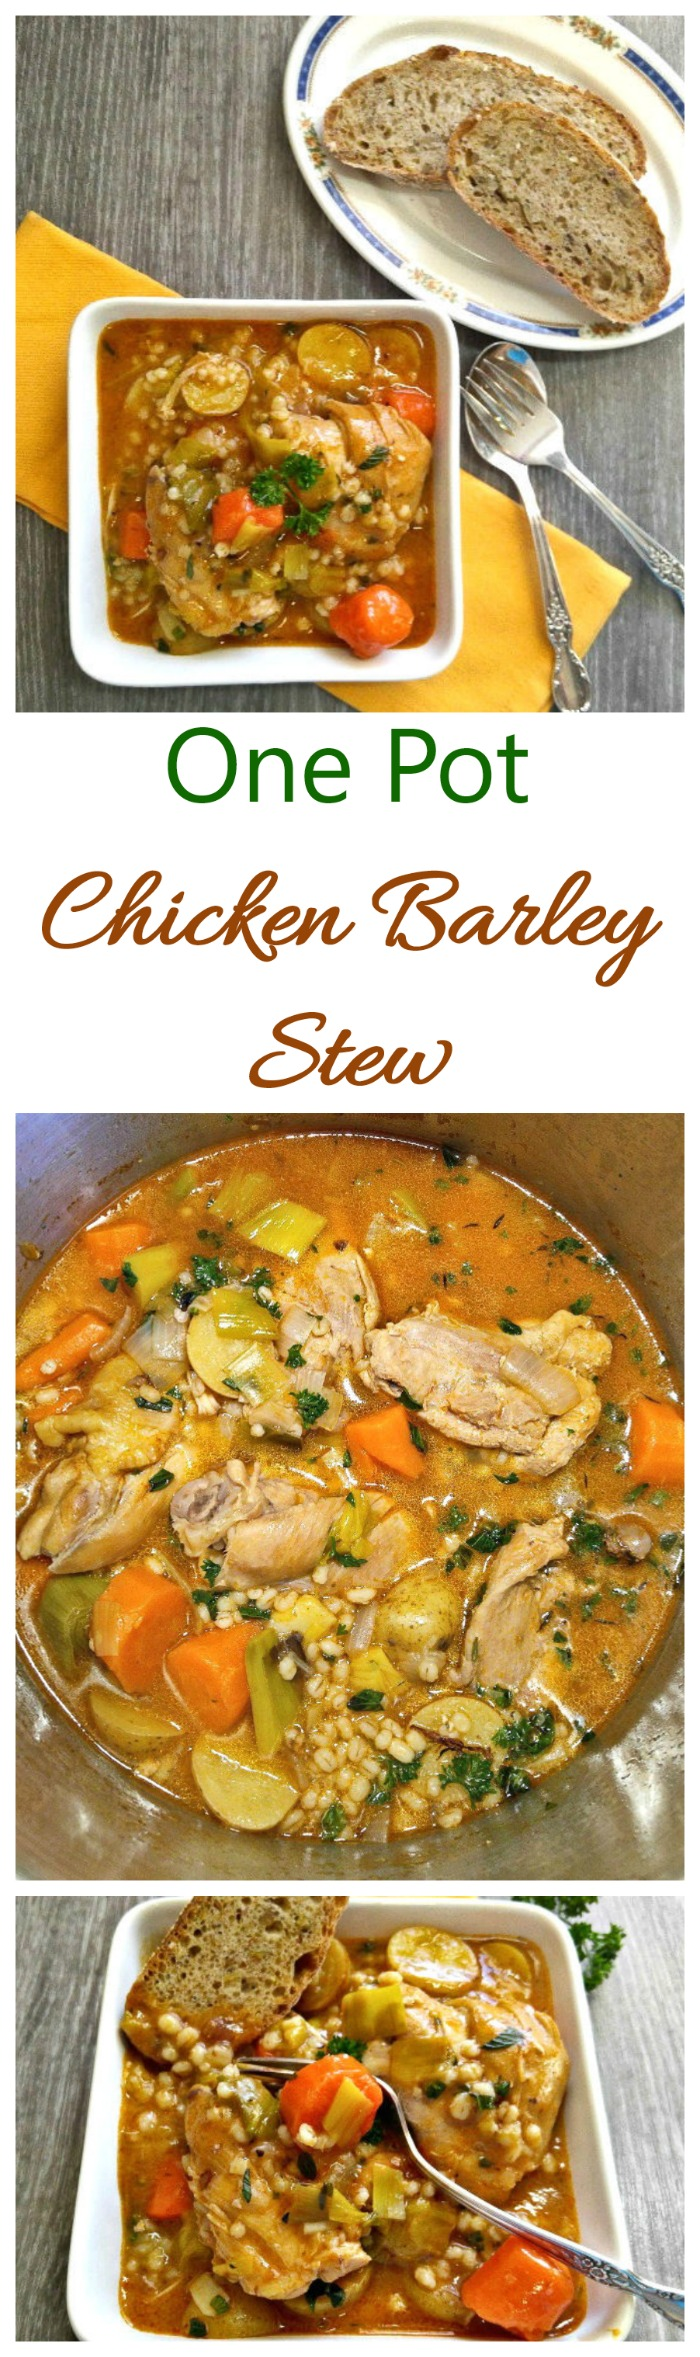 One Pot Chicken Barley Stew - Hearty Winter Vegetable Stew Recipe